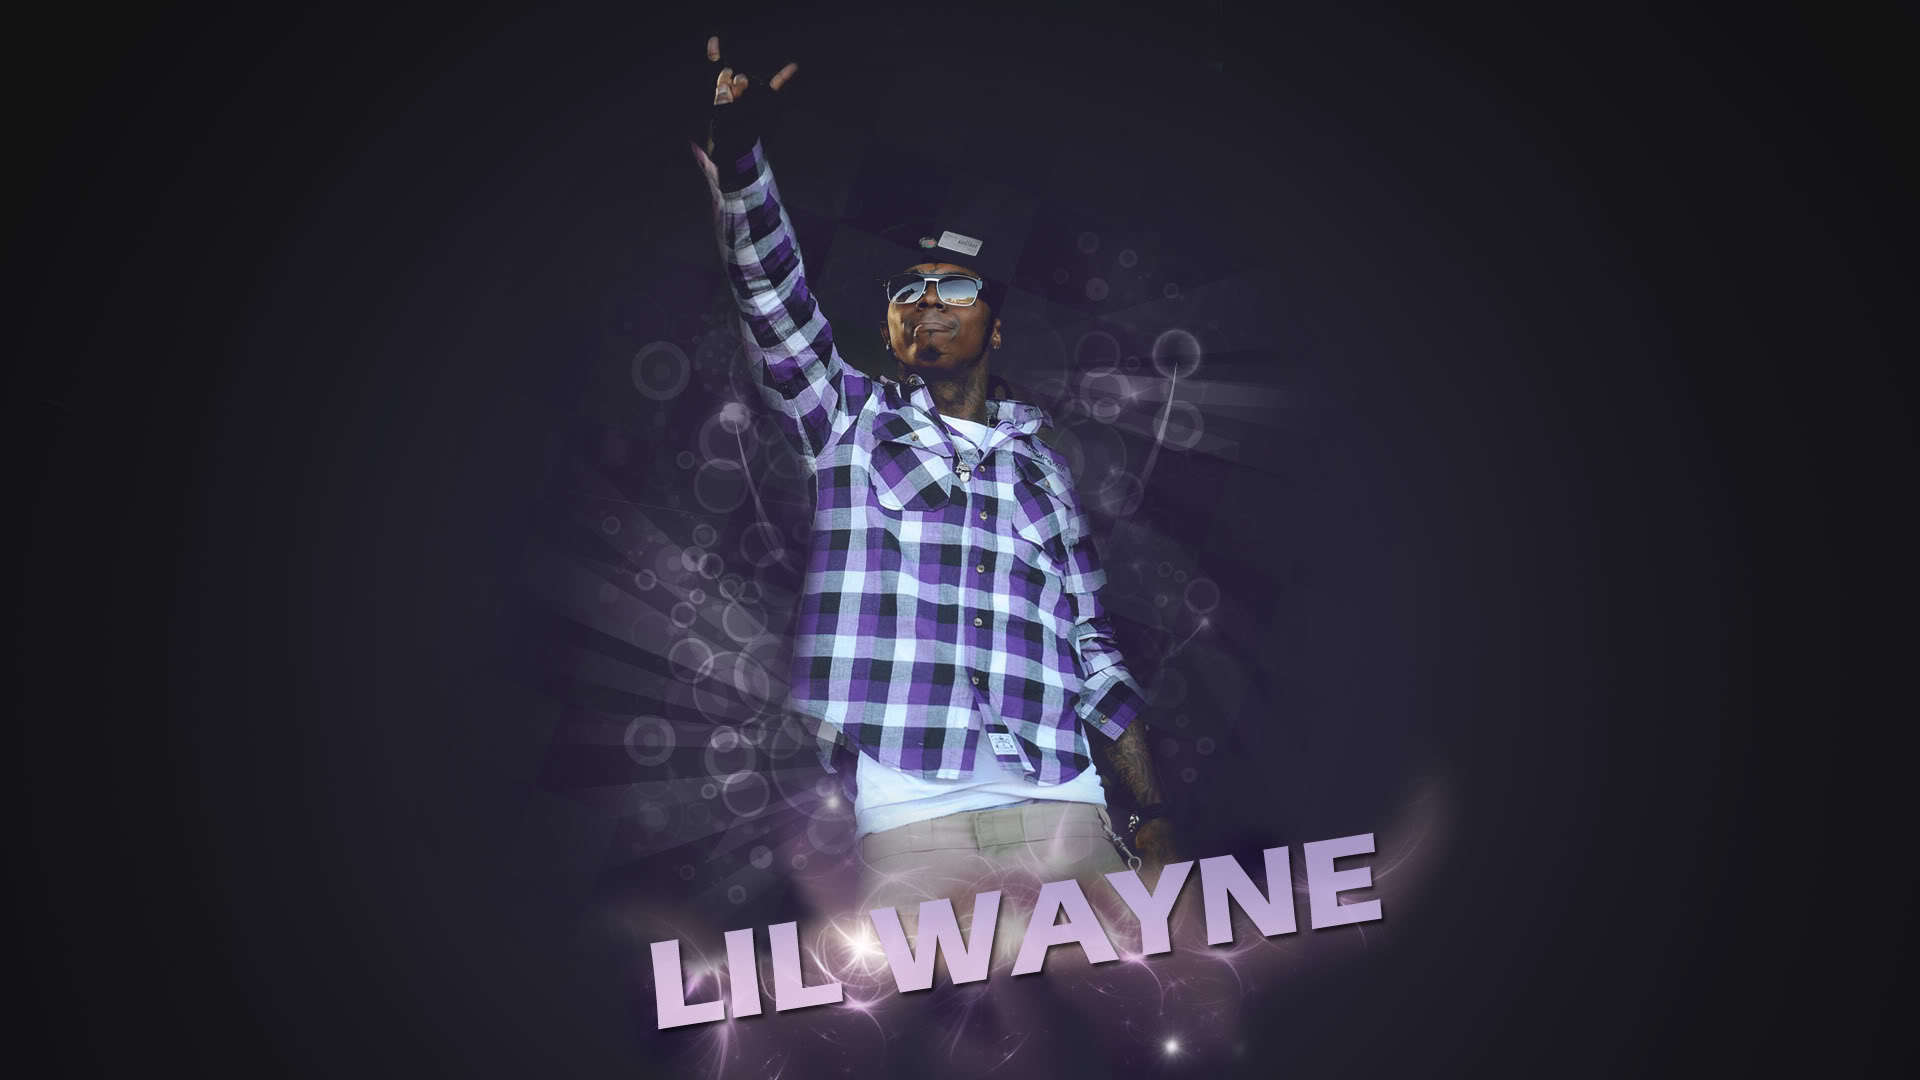 Lil Wayne Desktop Wallpaper